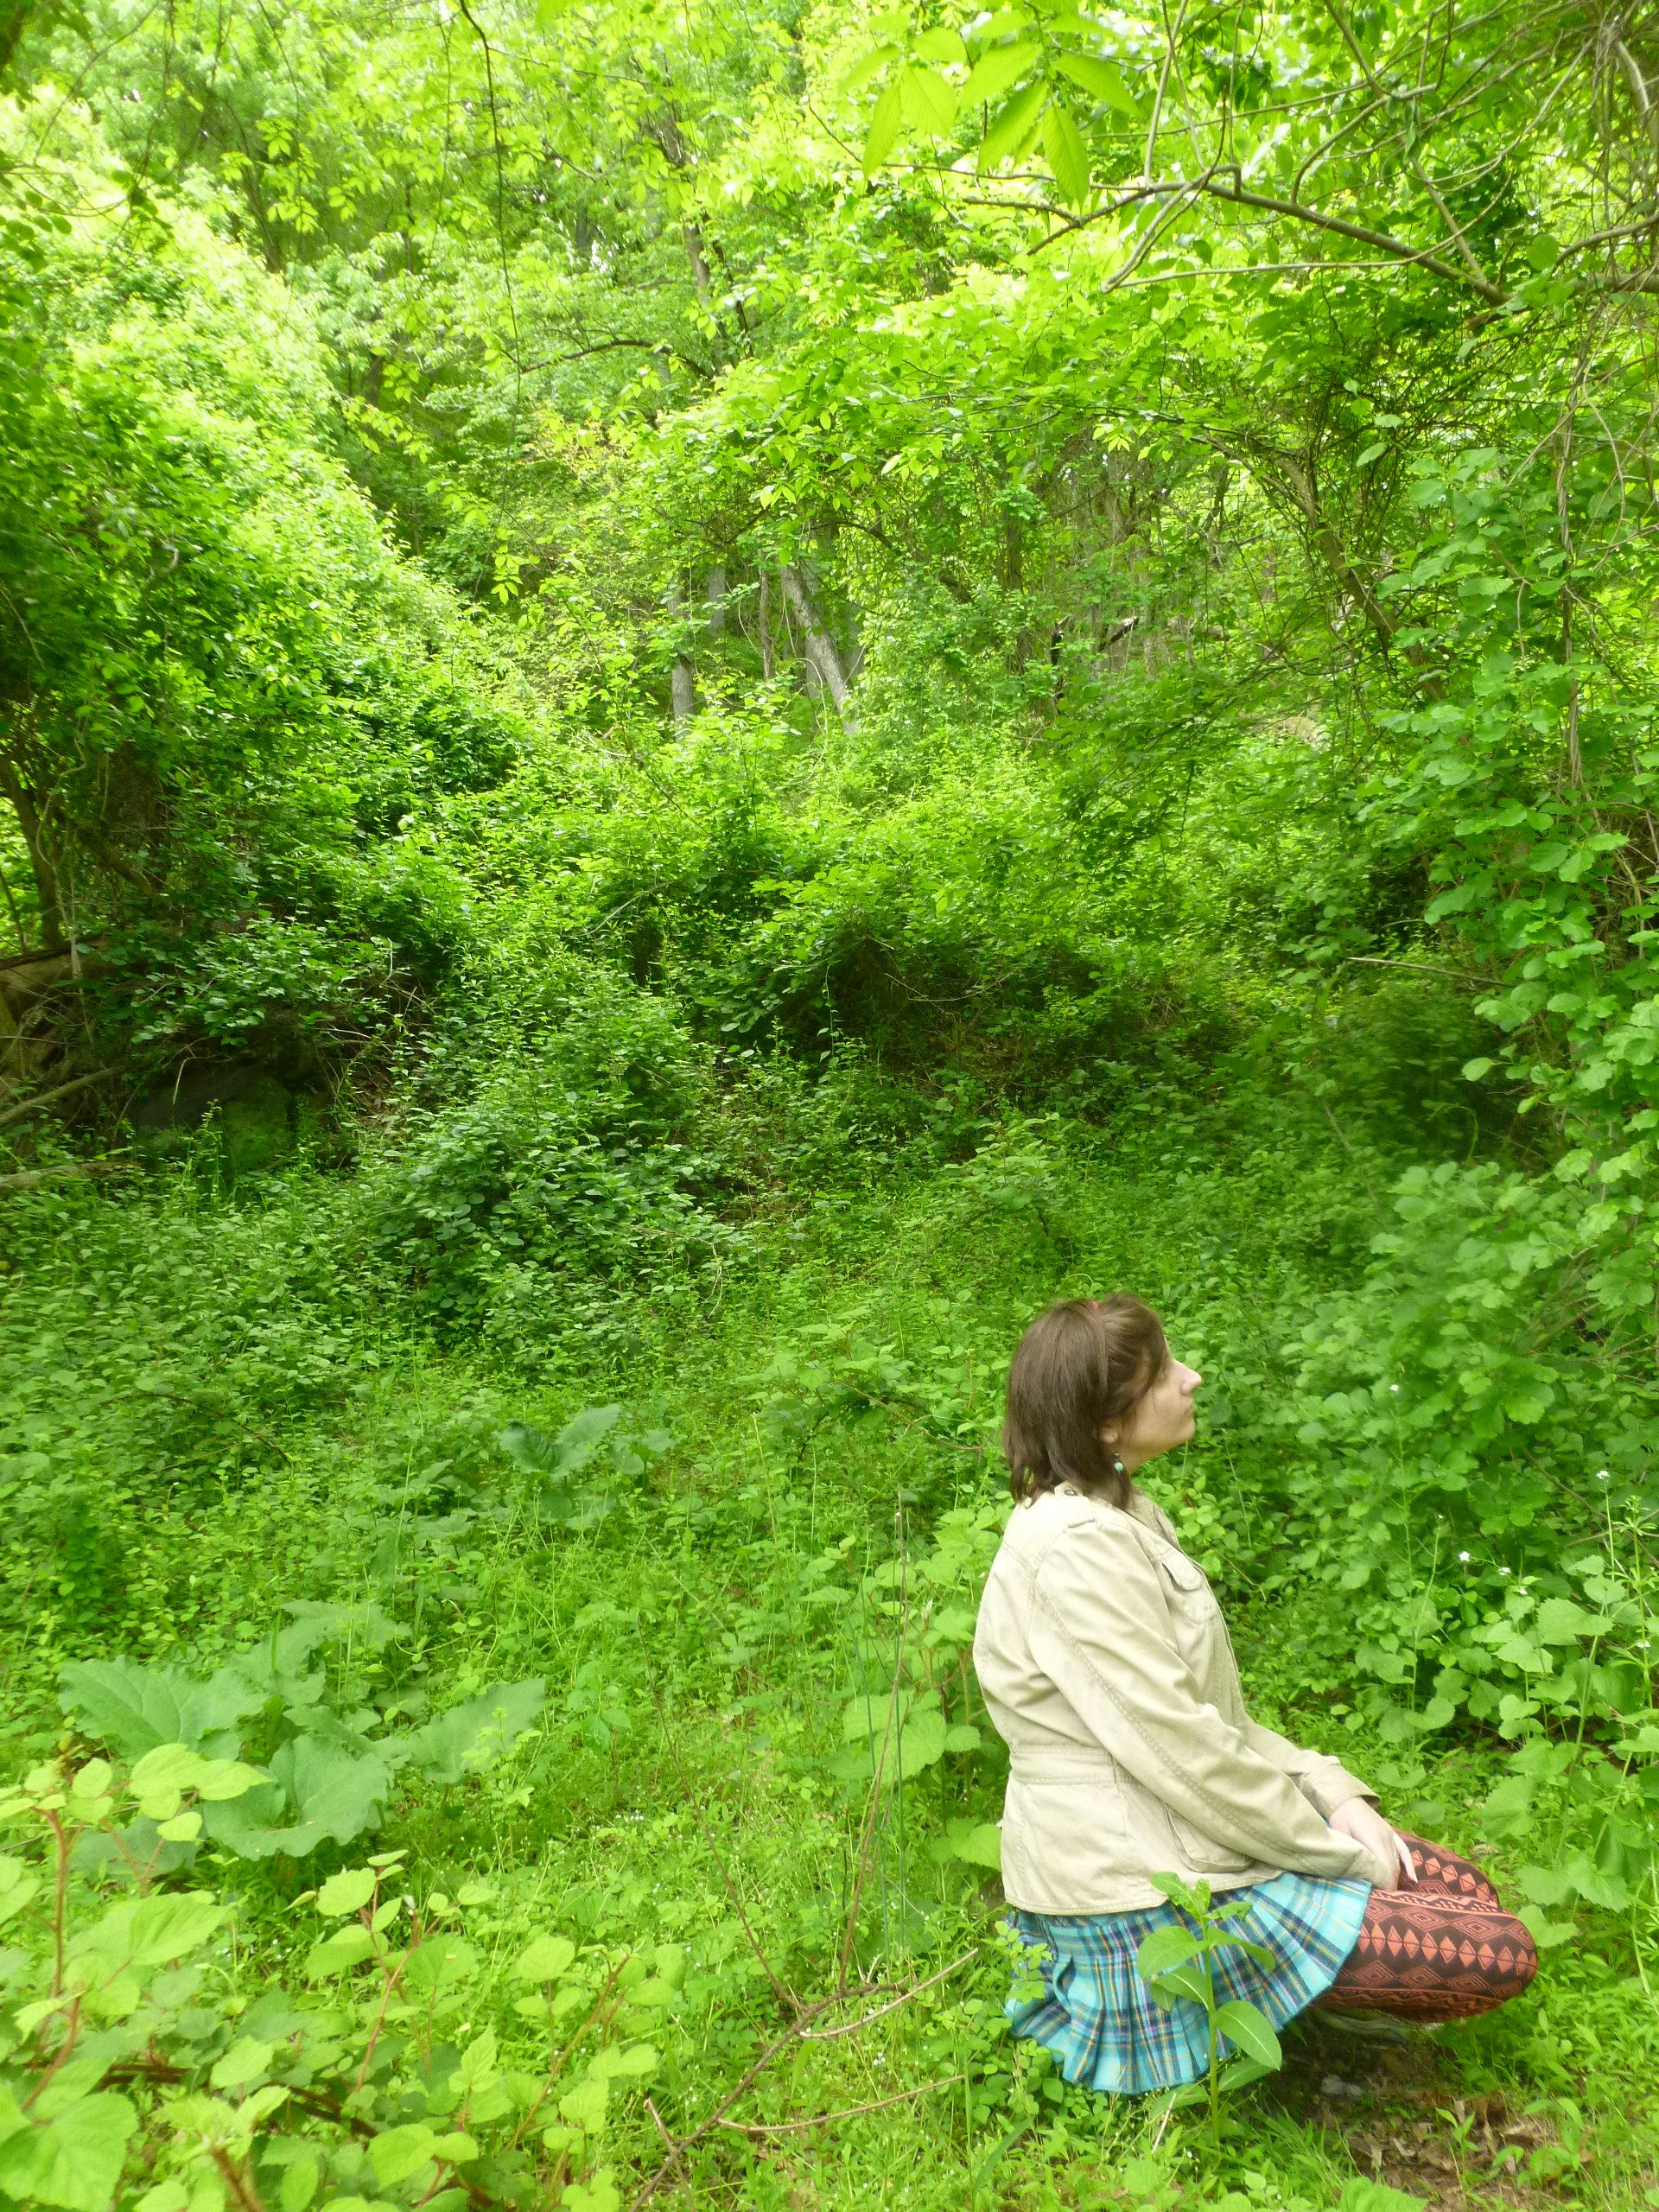 staging: patapsco state park holofield are perfect for fantasy- sci-fi? cosplay